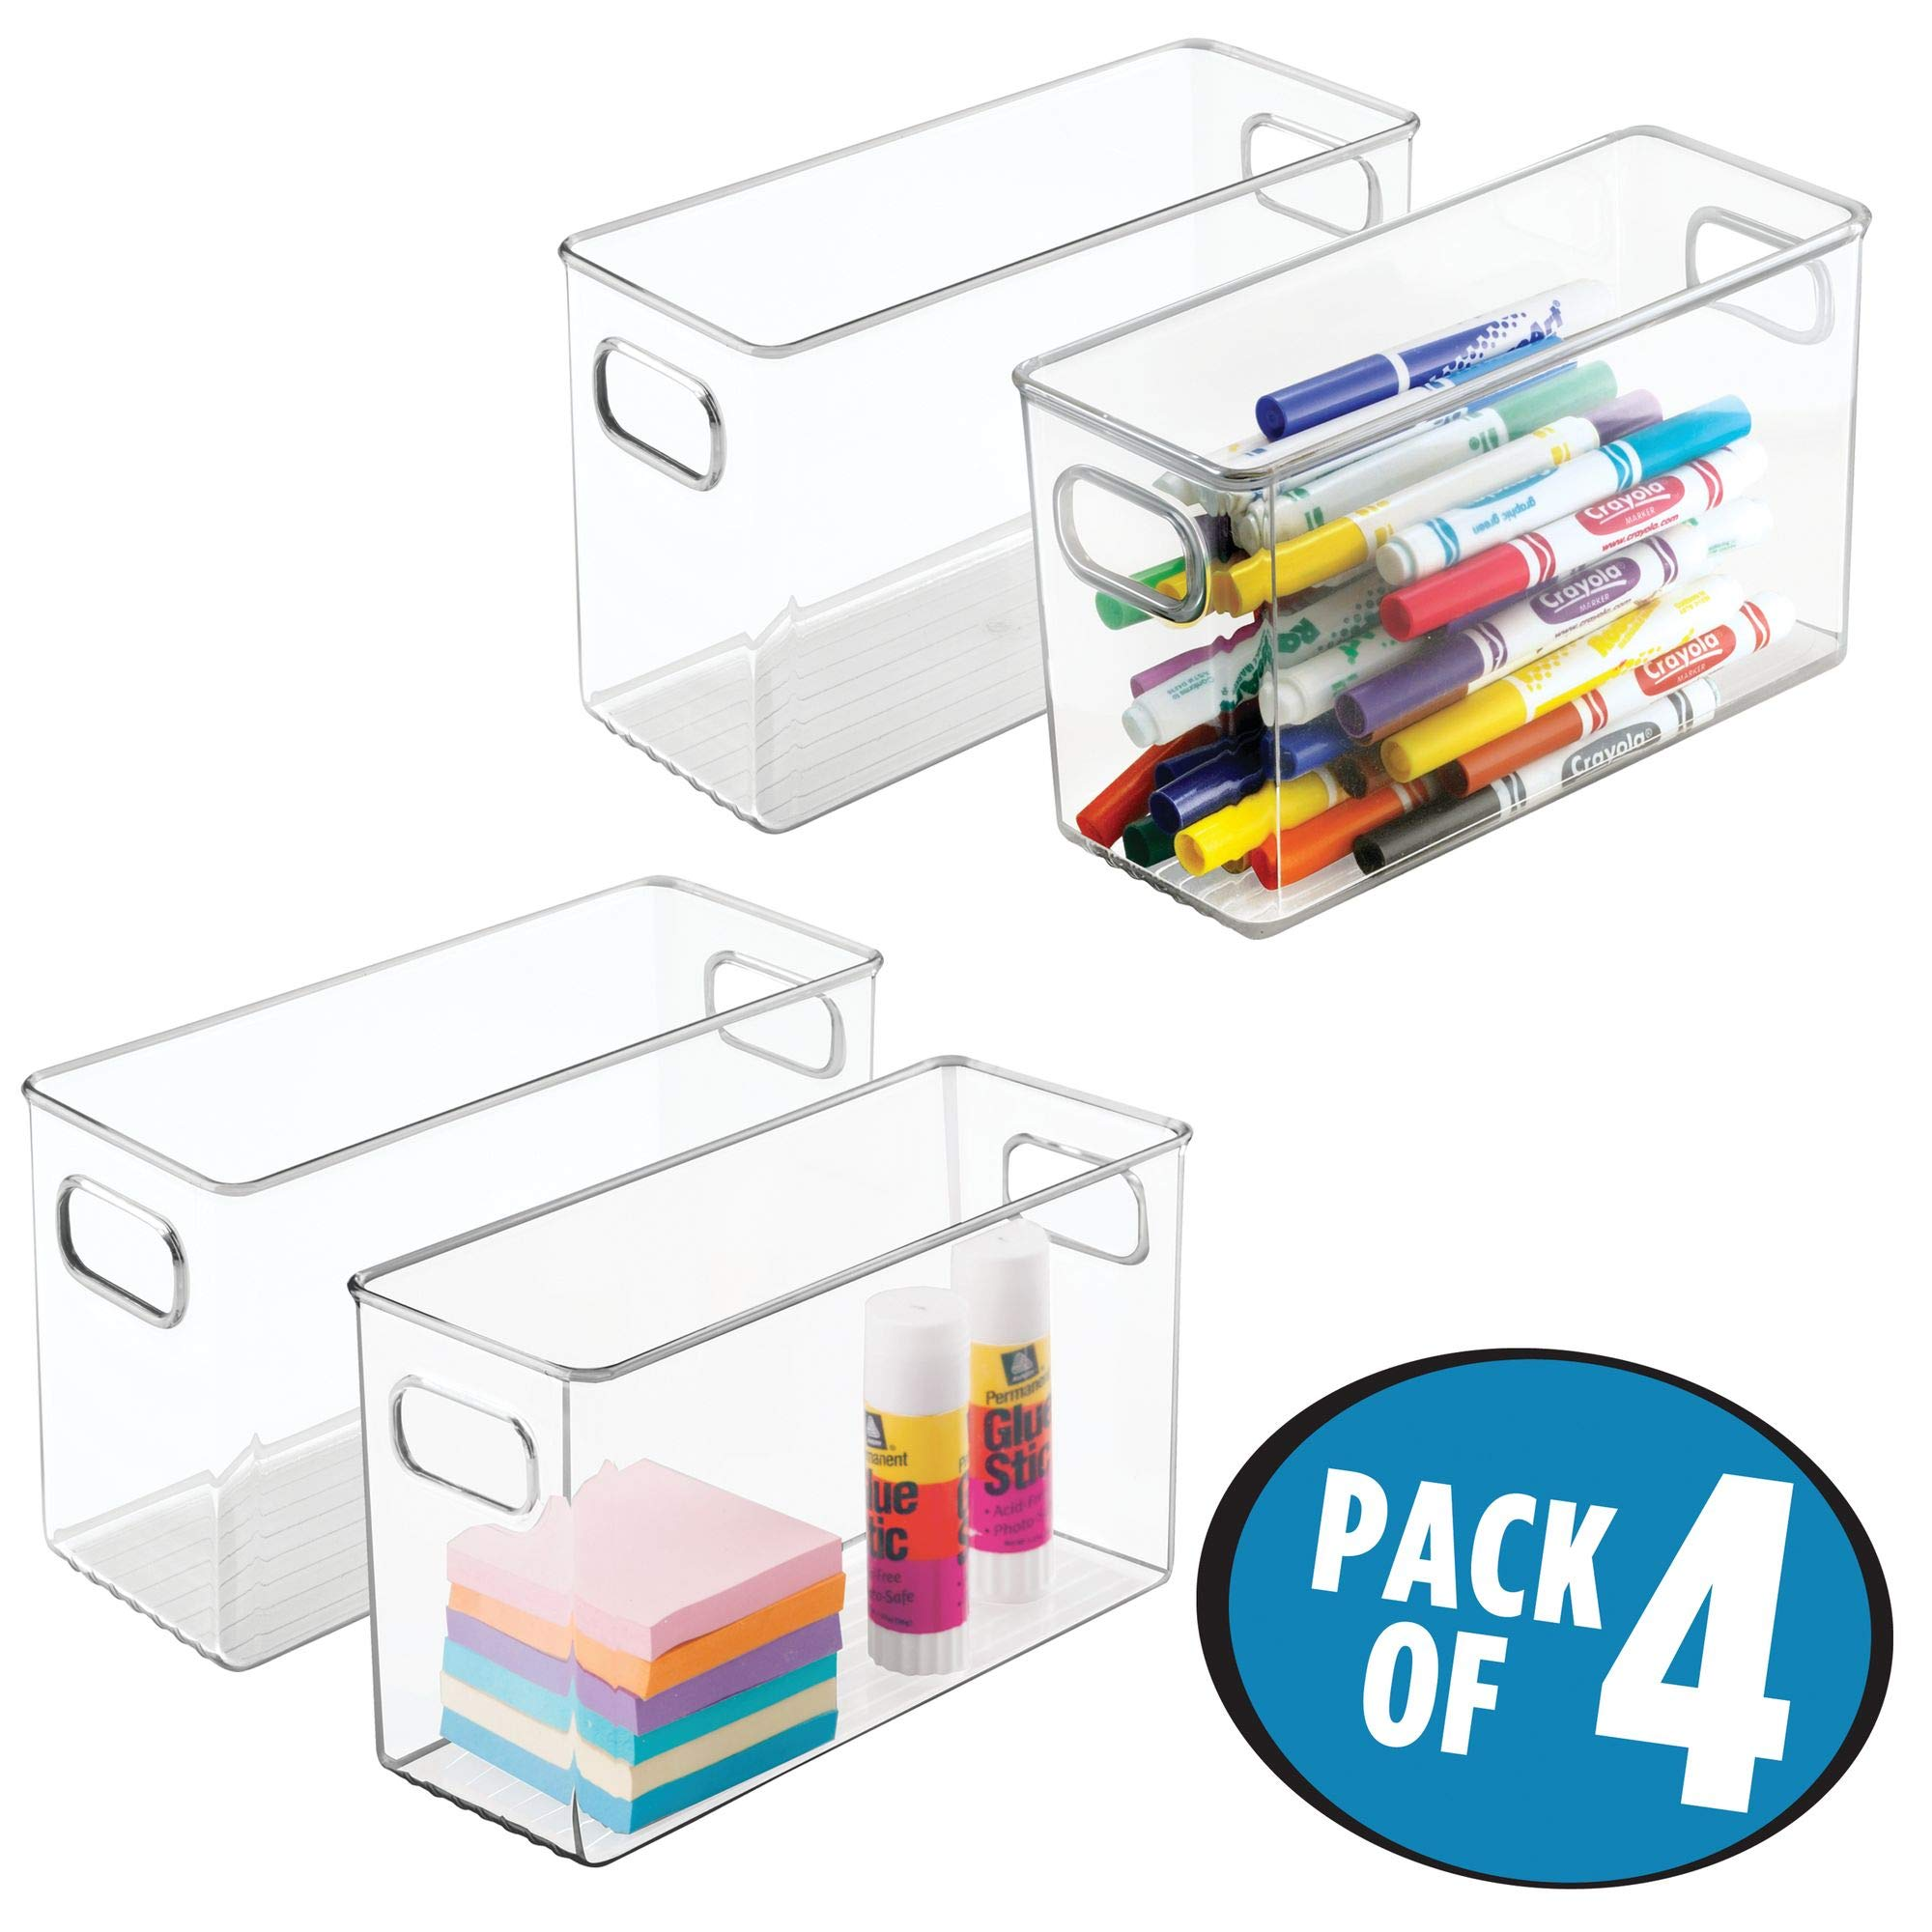 mDesign Office Supplies Desk Organizer Bin for Pens, Pencils, Markers, Highlighters, Tape - Pack of 4, 10'' x 4'' x 6'', Clear by mDesign (Image #2)